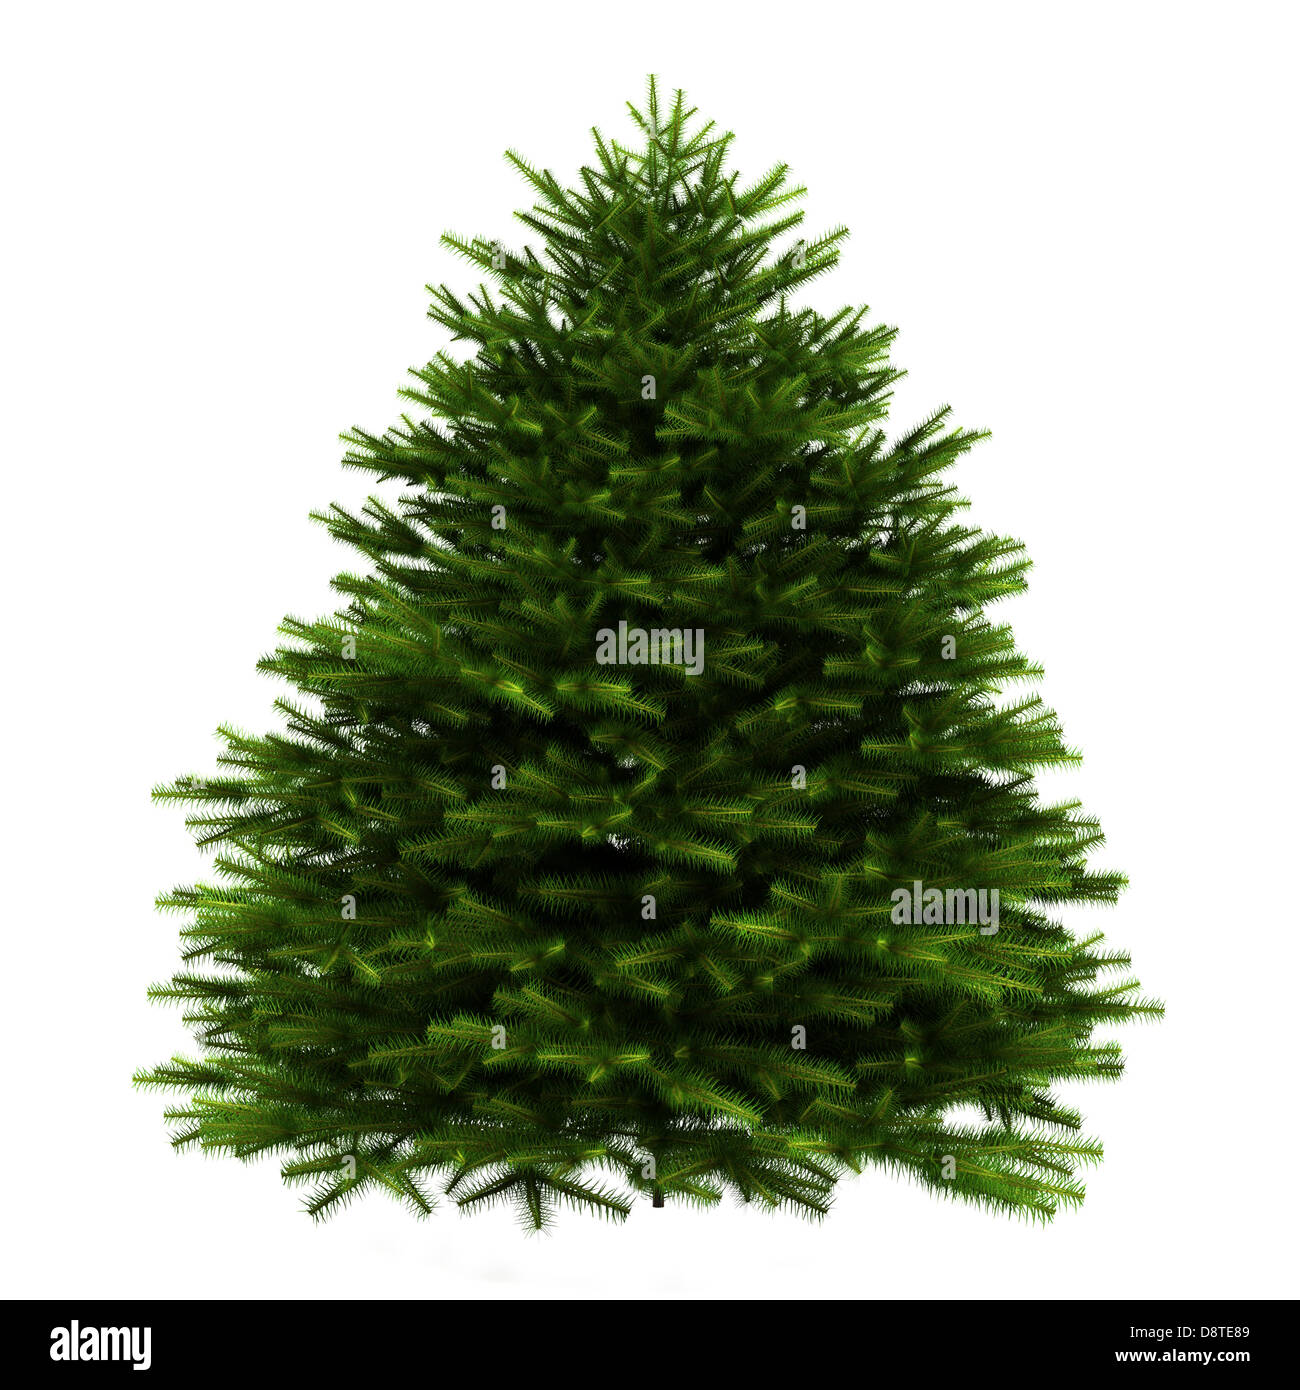 momi fir tree isolated on white background - Stock Image